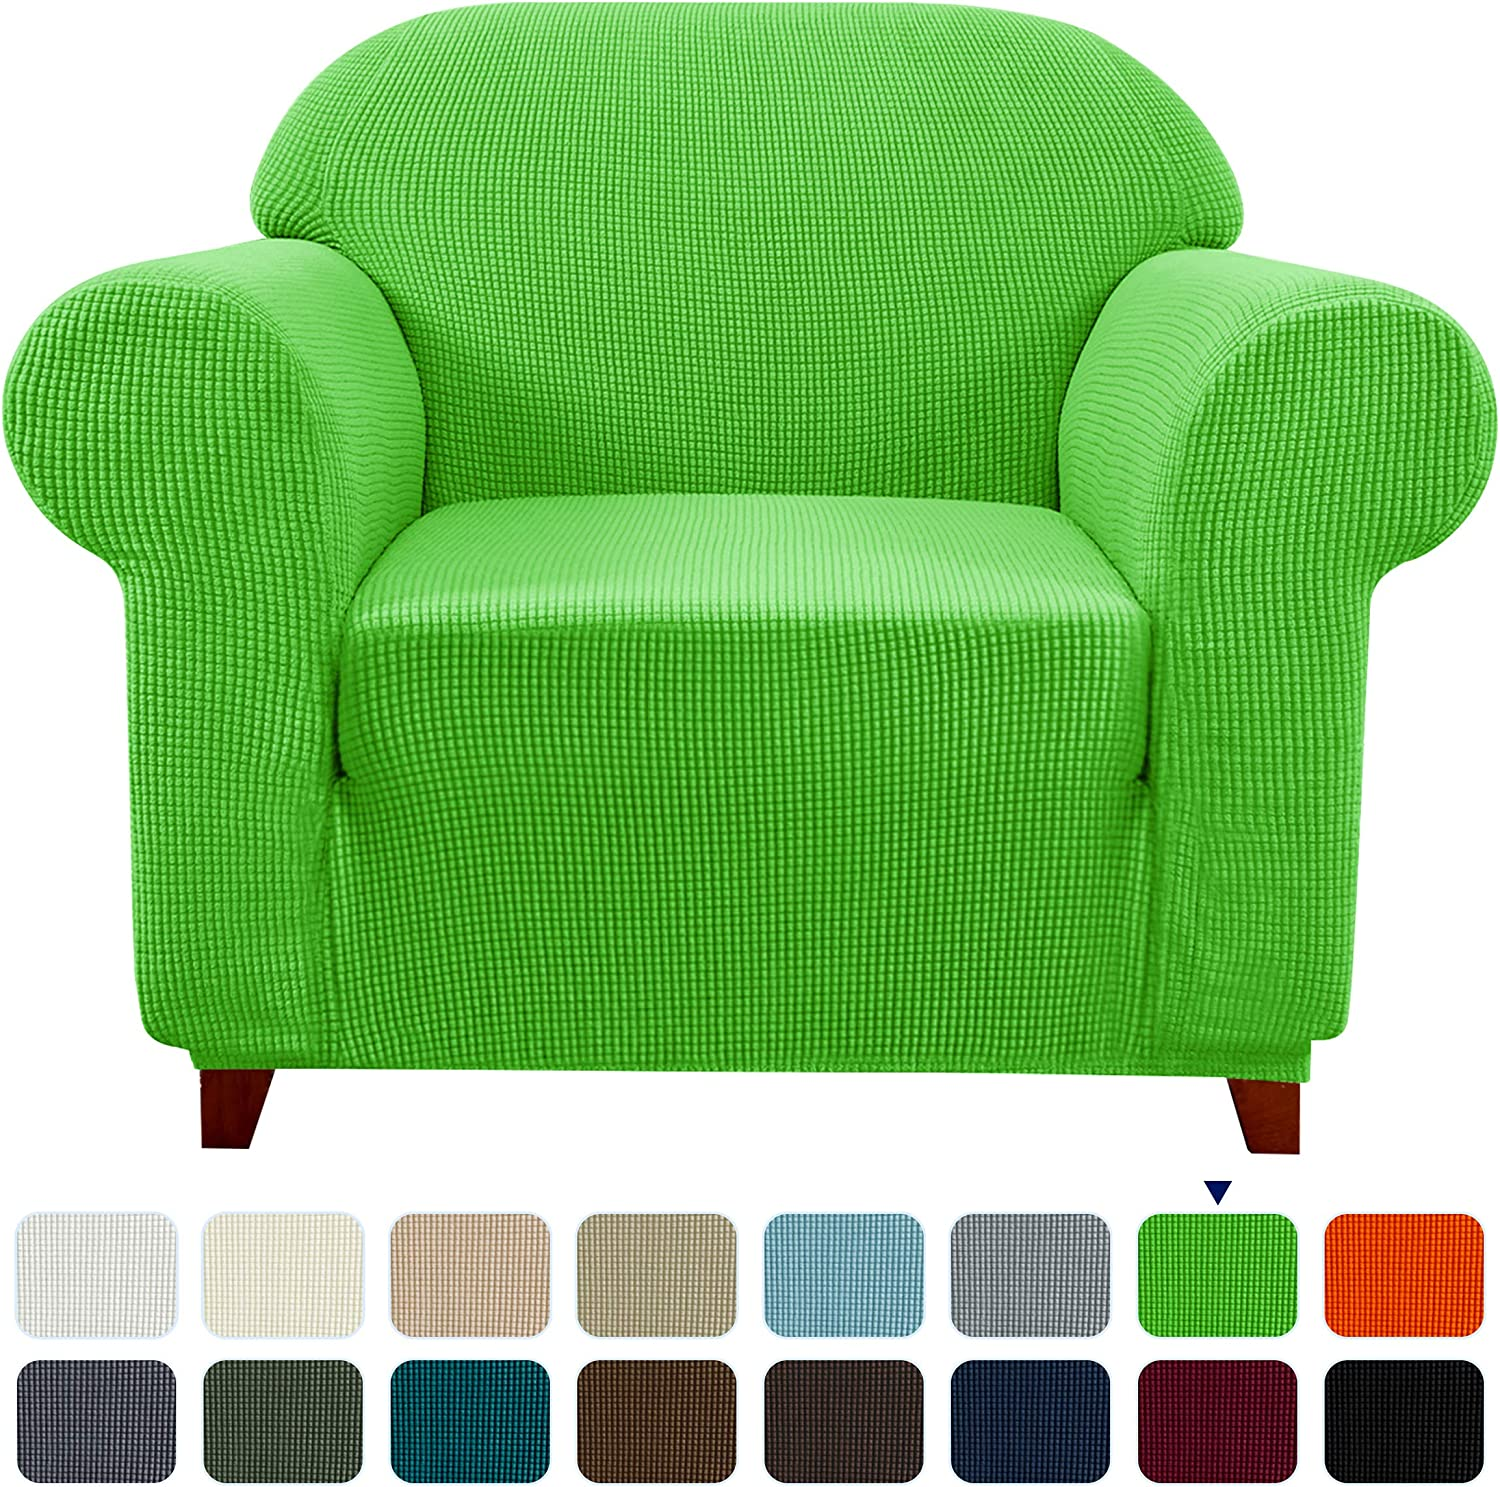 subrtex Stretch Sofa Cover 1 Piece Couch Slipcover Furniture Protector for Arm Chair Loveseat Coat Soft with Elastic Bottom, Polyester and Spandex